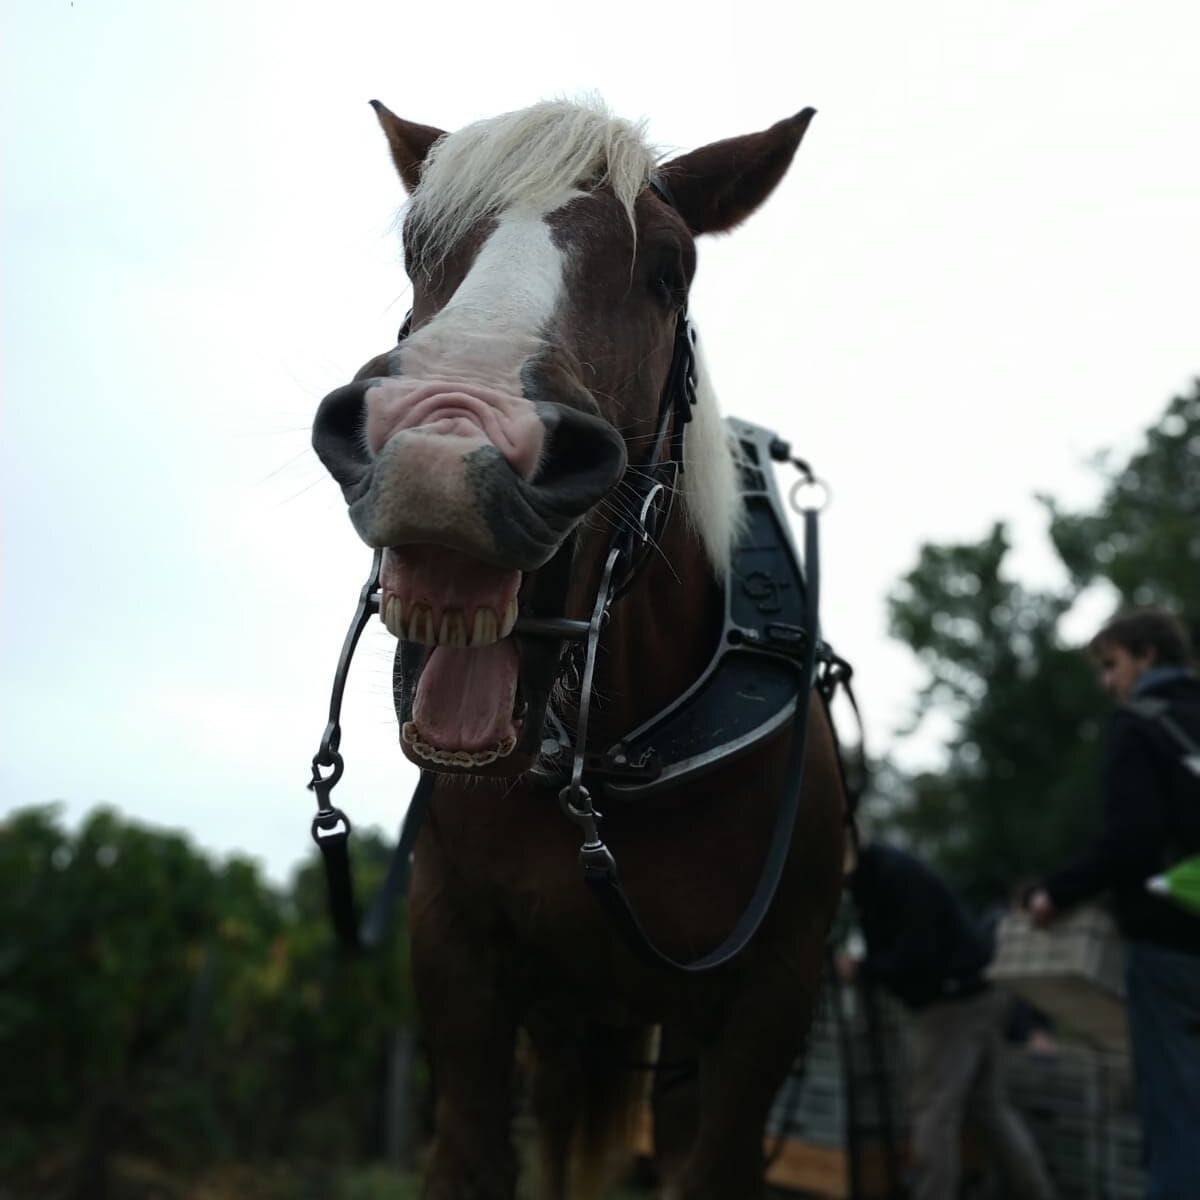 And here the horse laughing at me